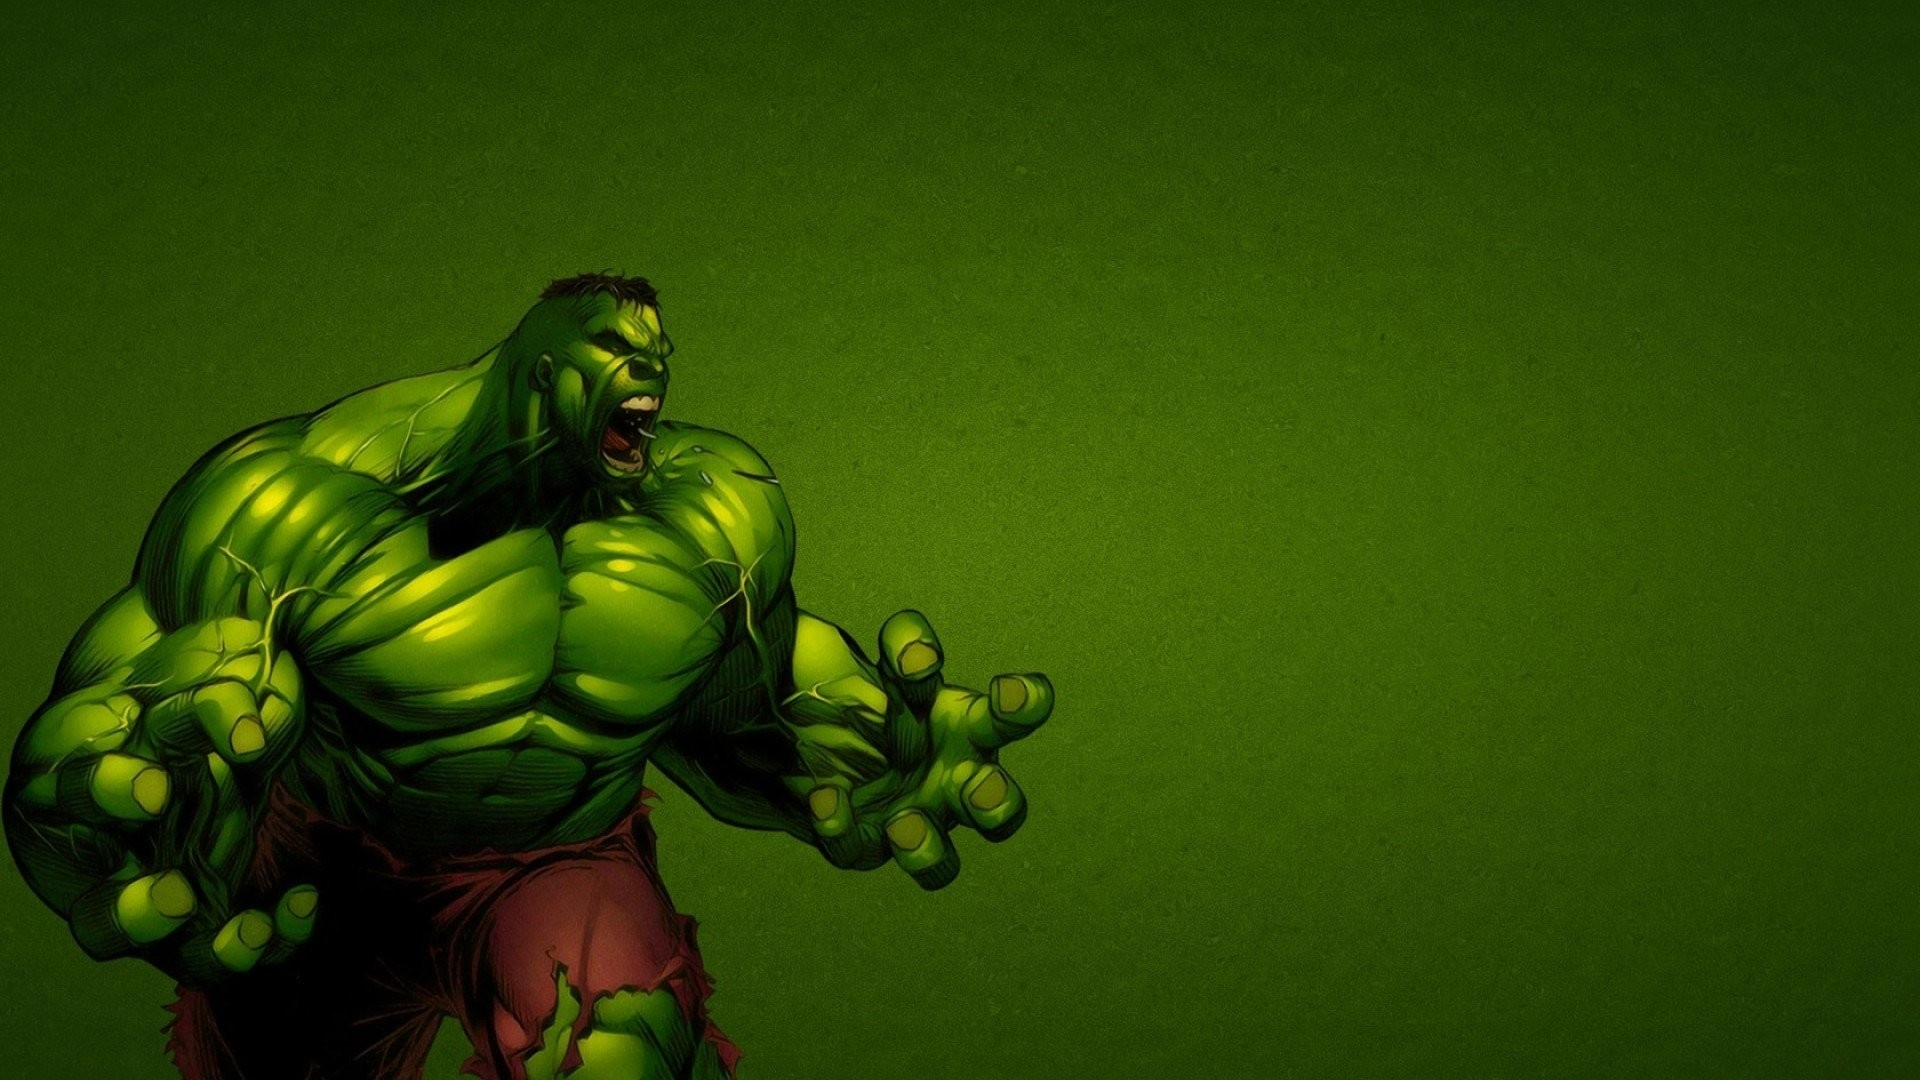 Hulk best wallpaper